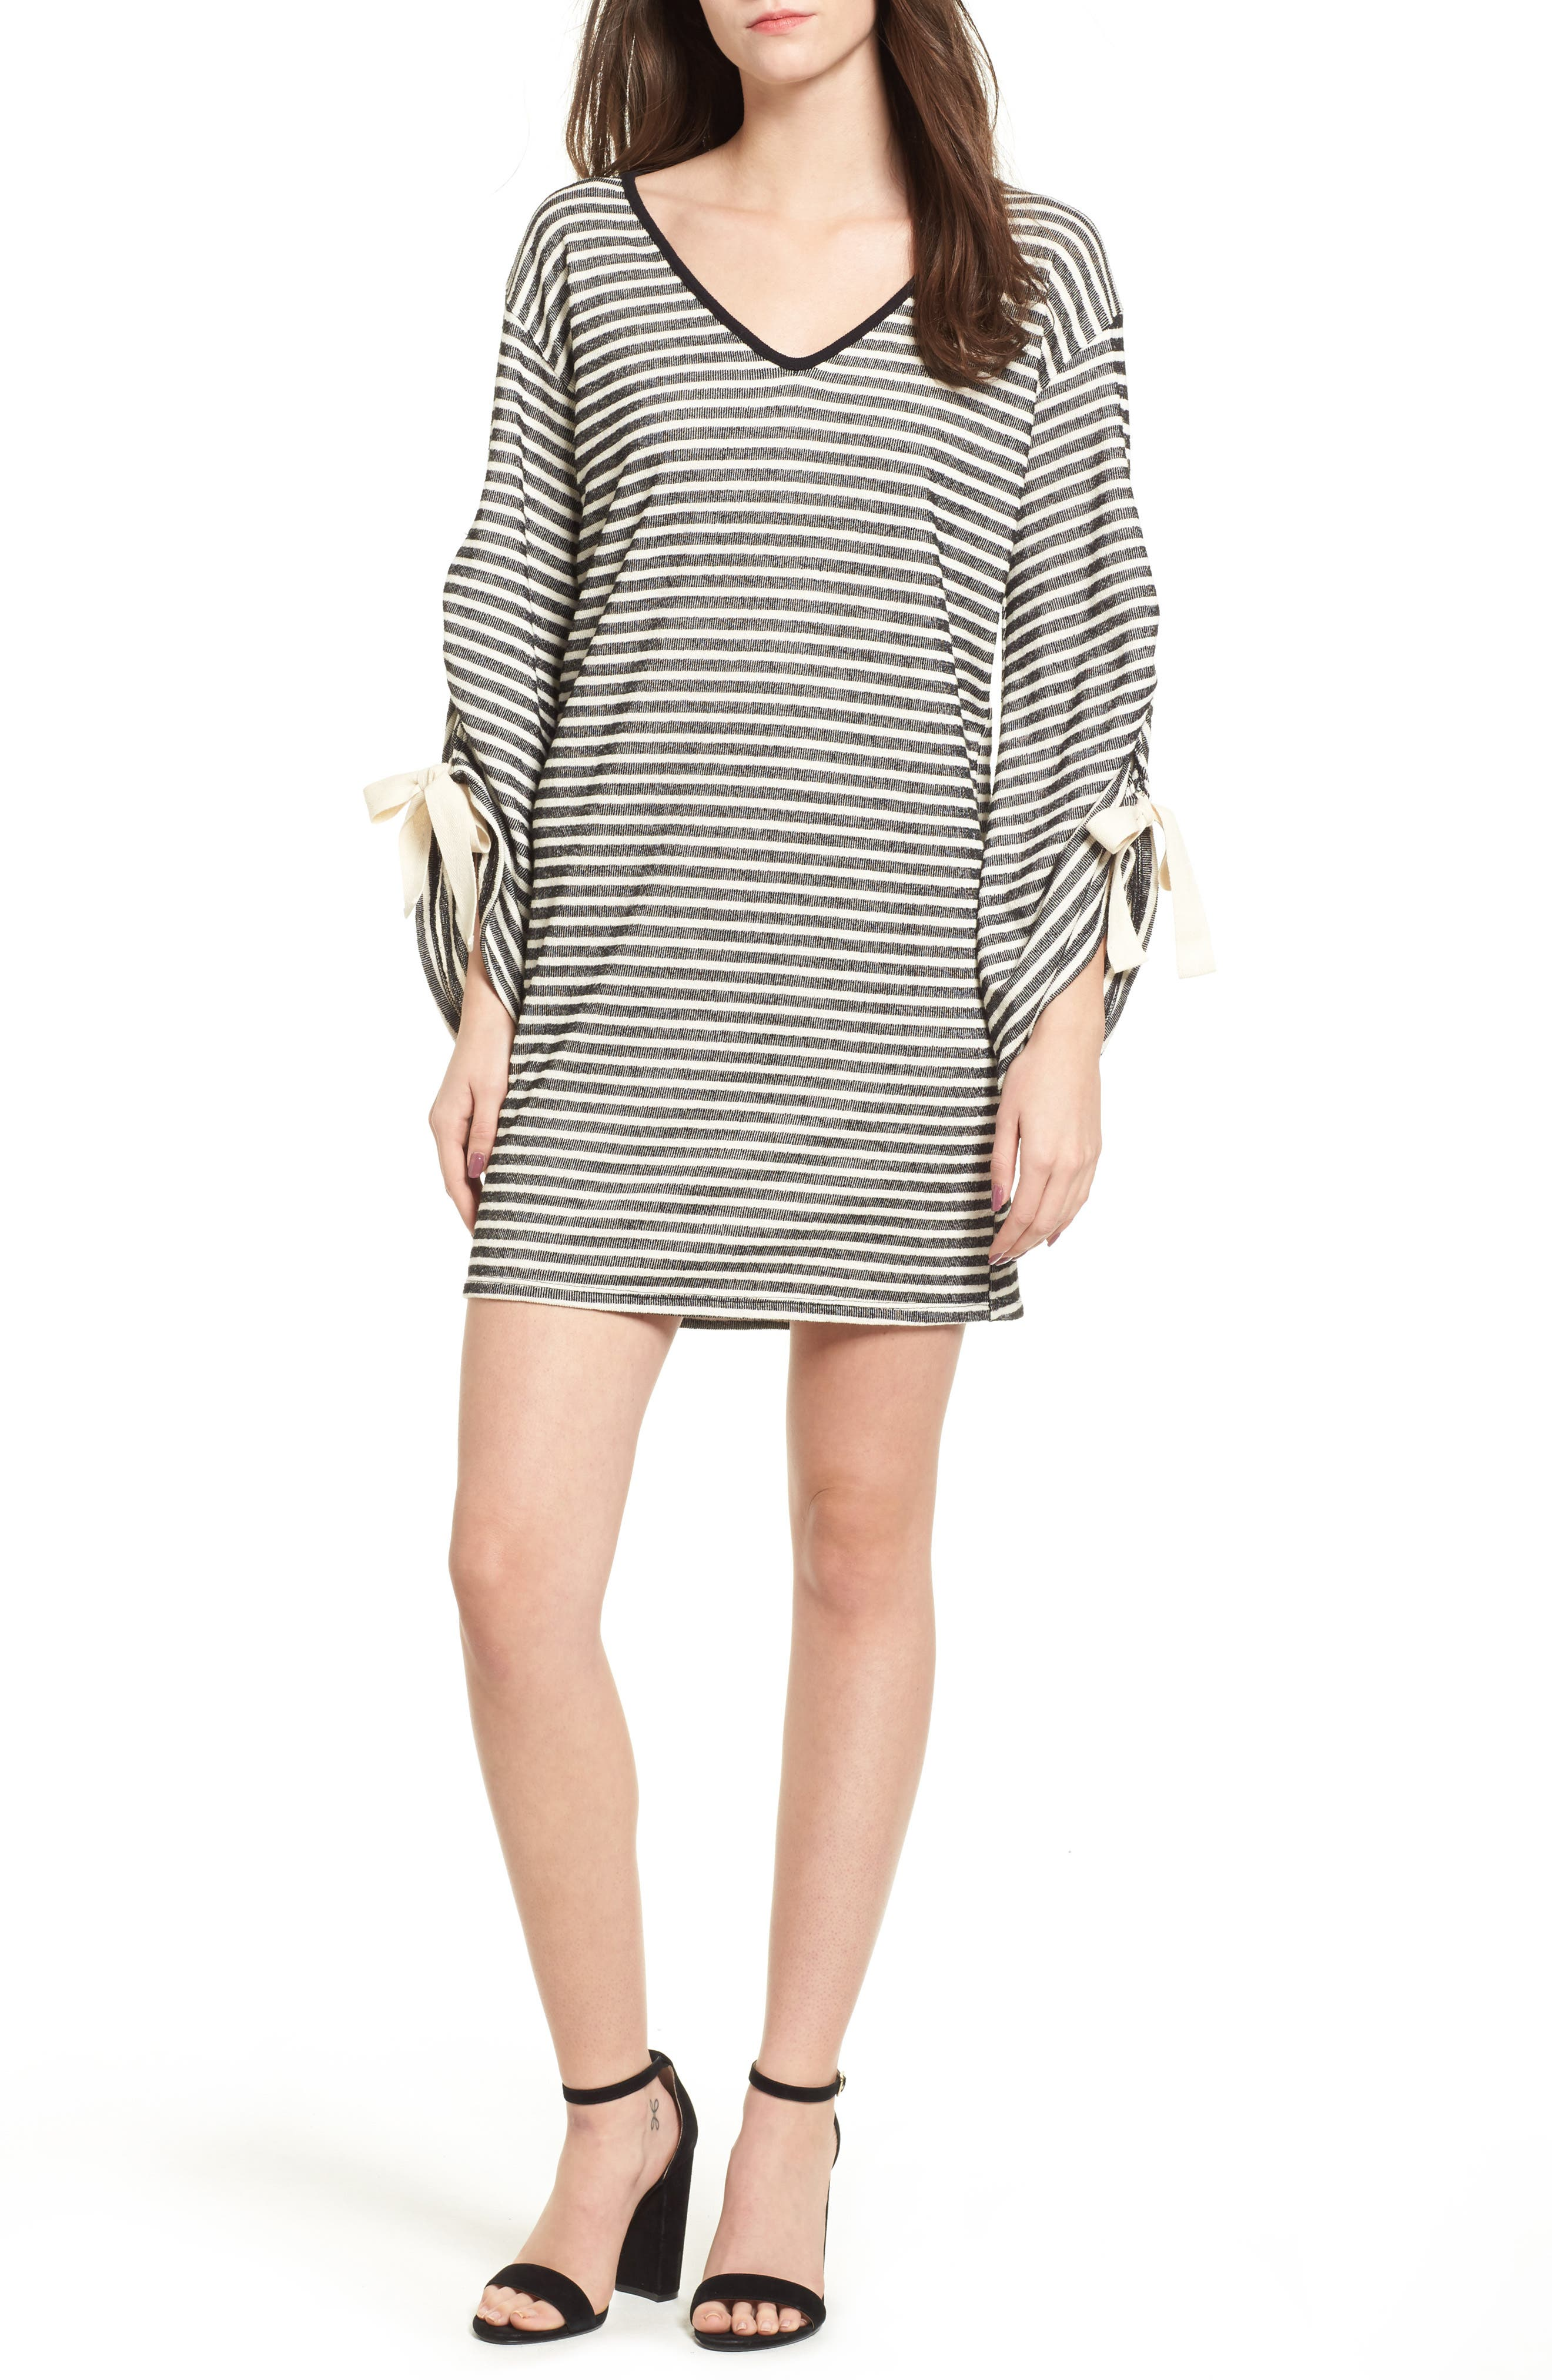 Everly Tie Sleeve Sweatshirt Dress